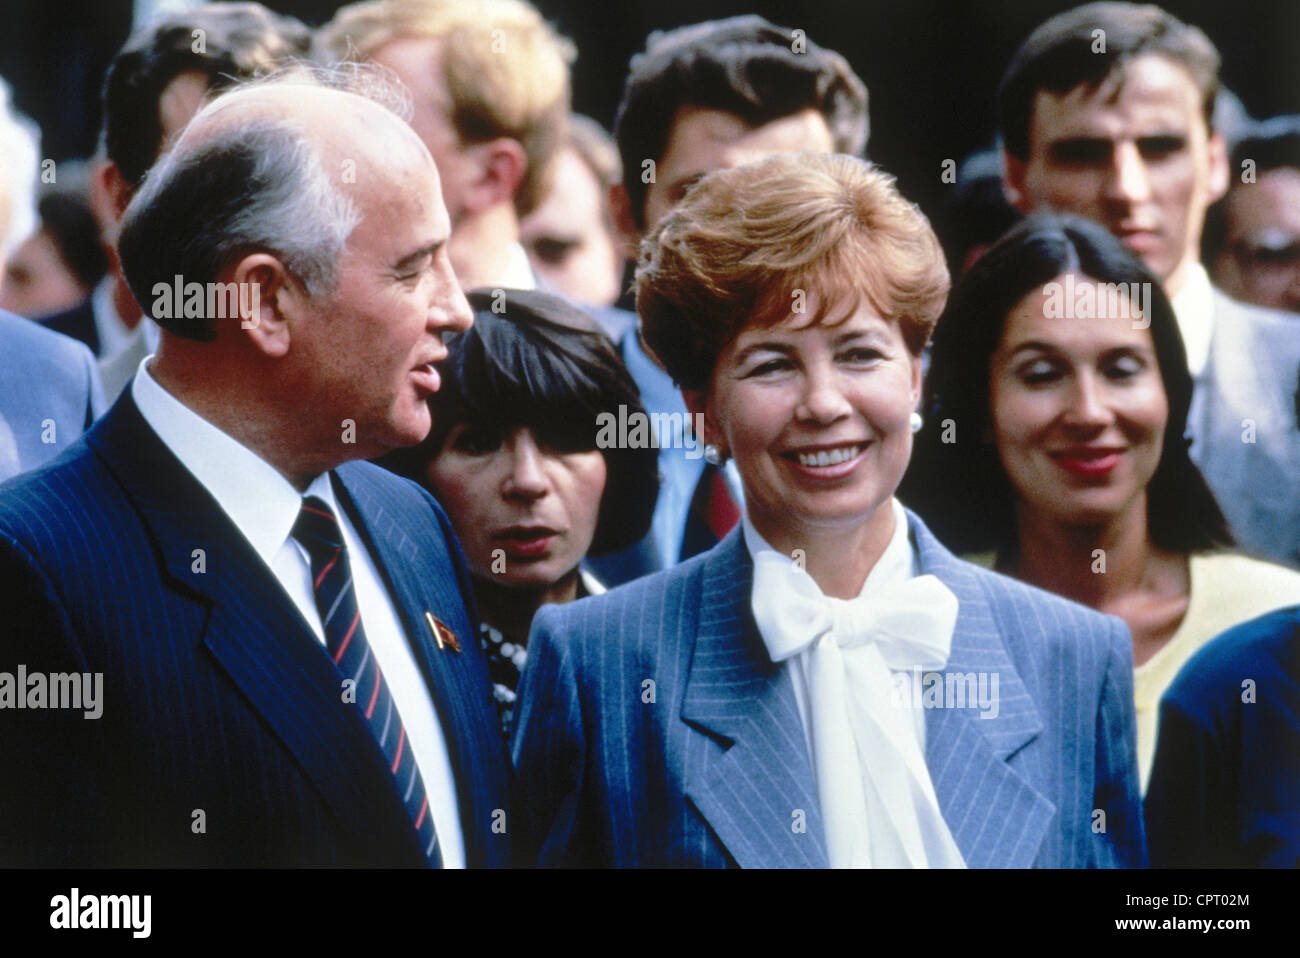 Mikhail Gorbachev, * 2.3.1931, Soviet politician (CPSU), half length, with his wife Raisa, during a state visit - Stock Image